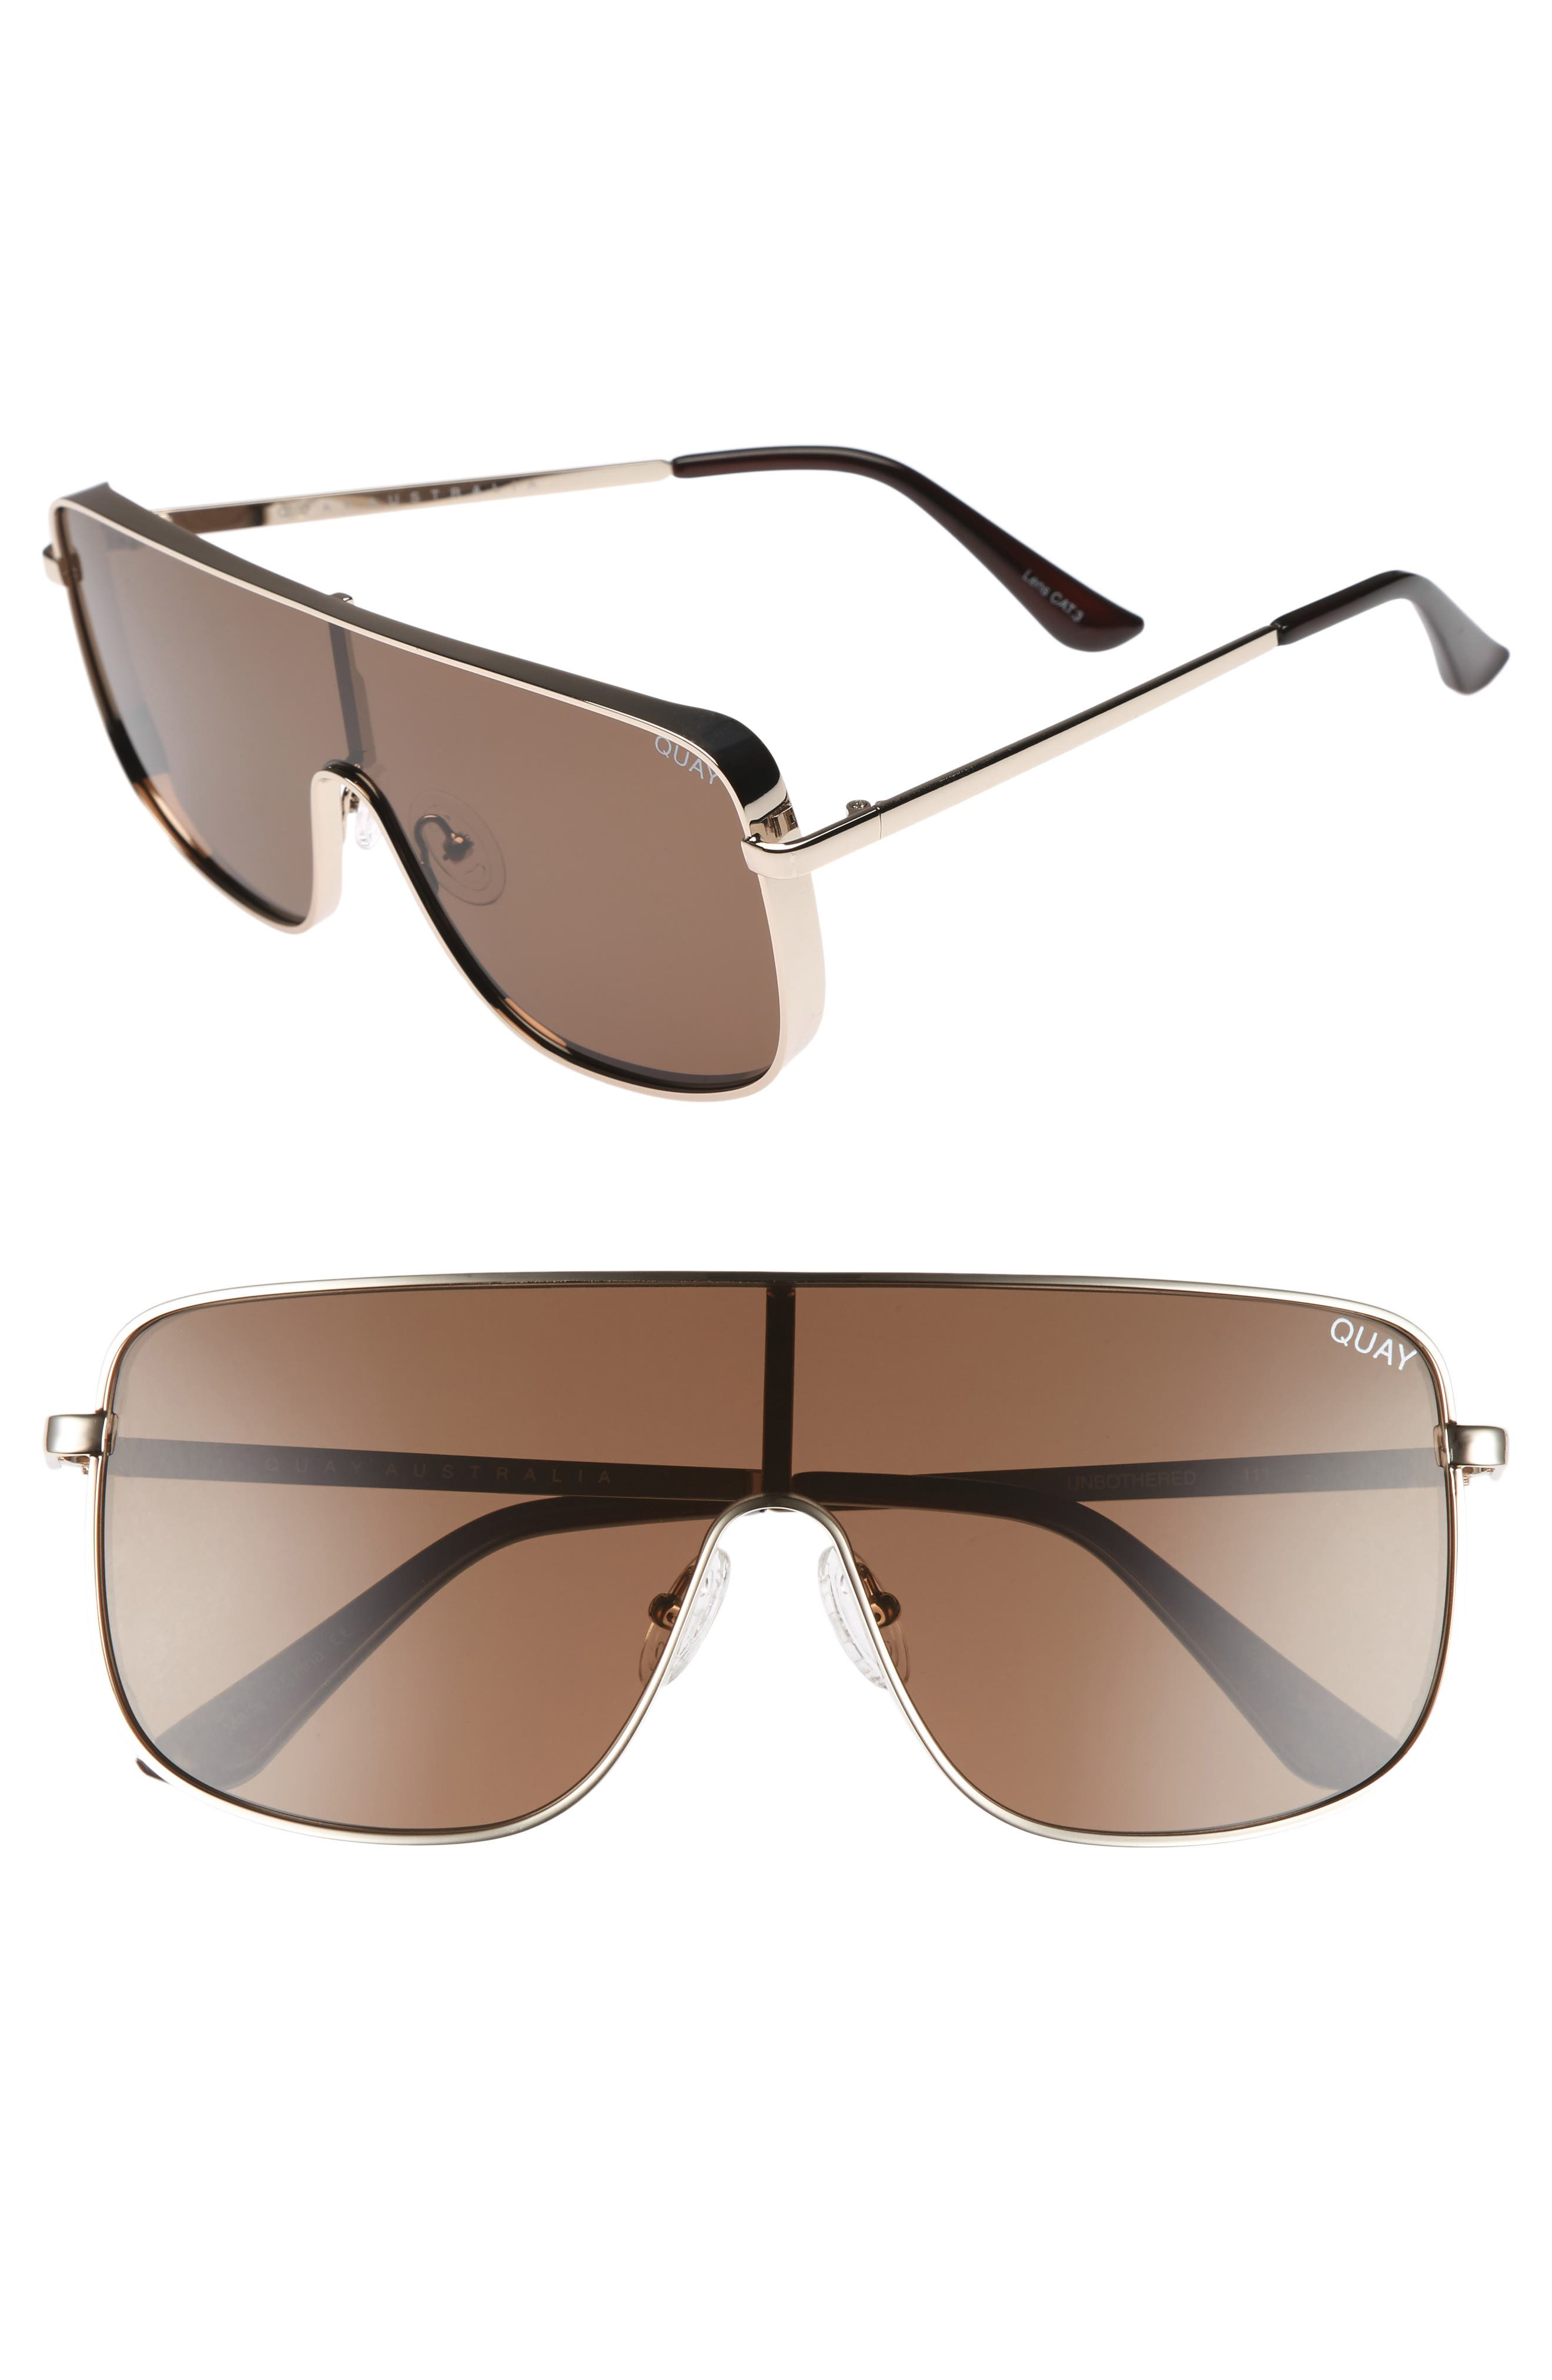 Unbothered 68mm Shield Sunglasses,                             Main thumbnail 2, color,